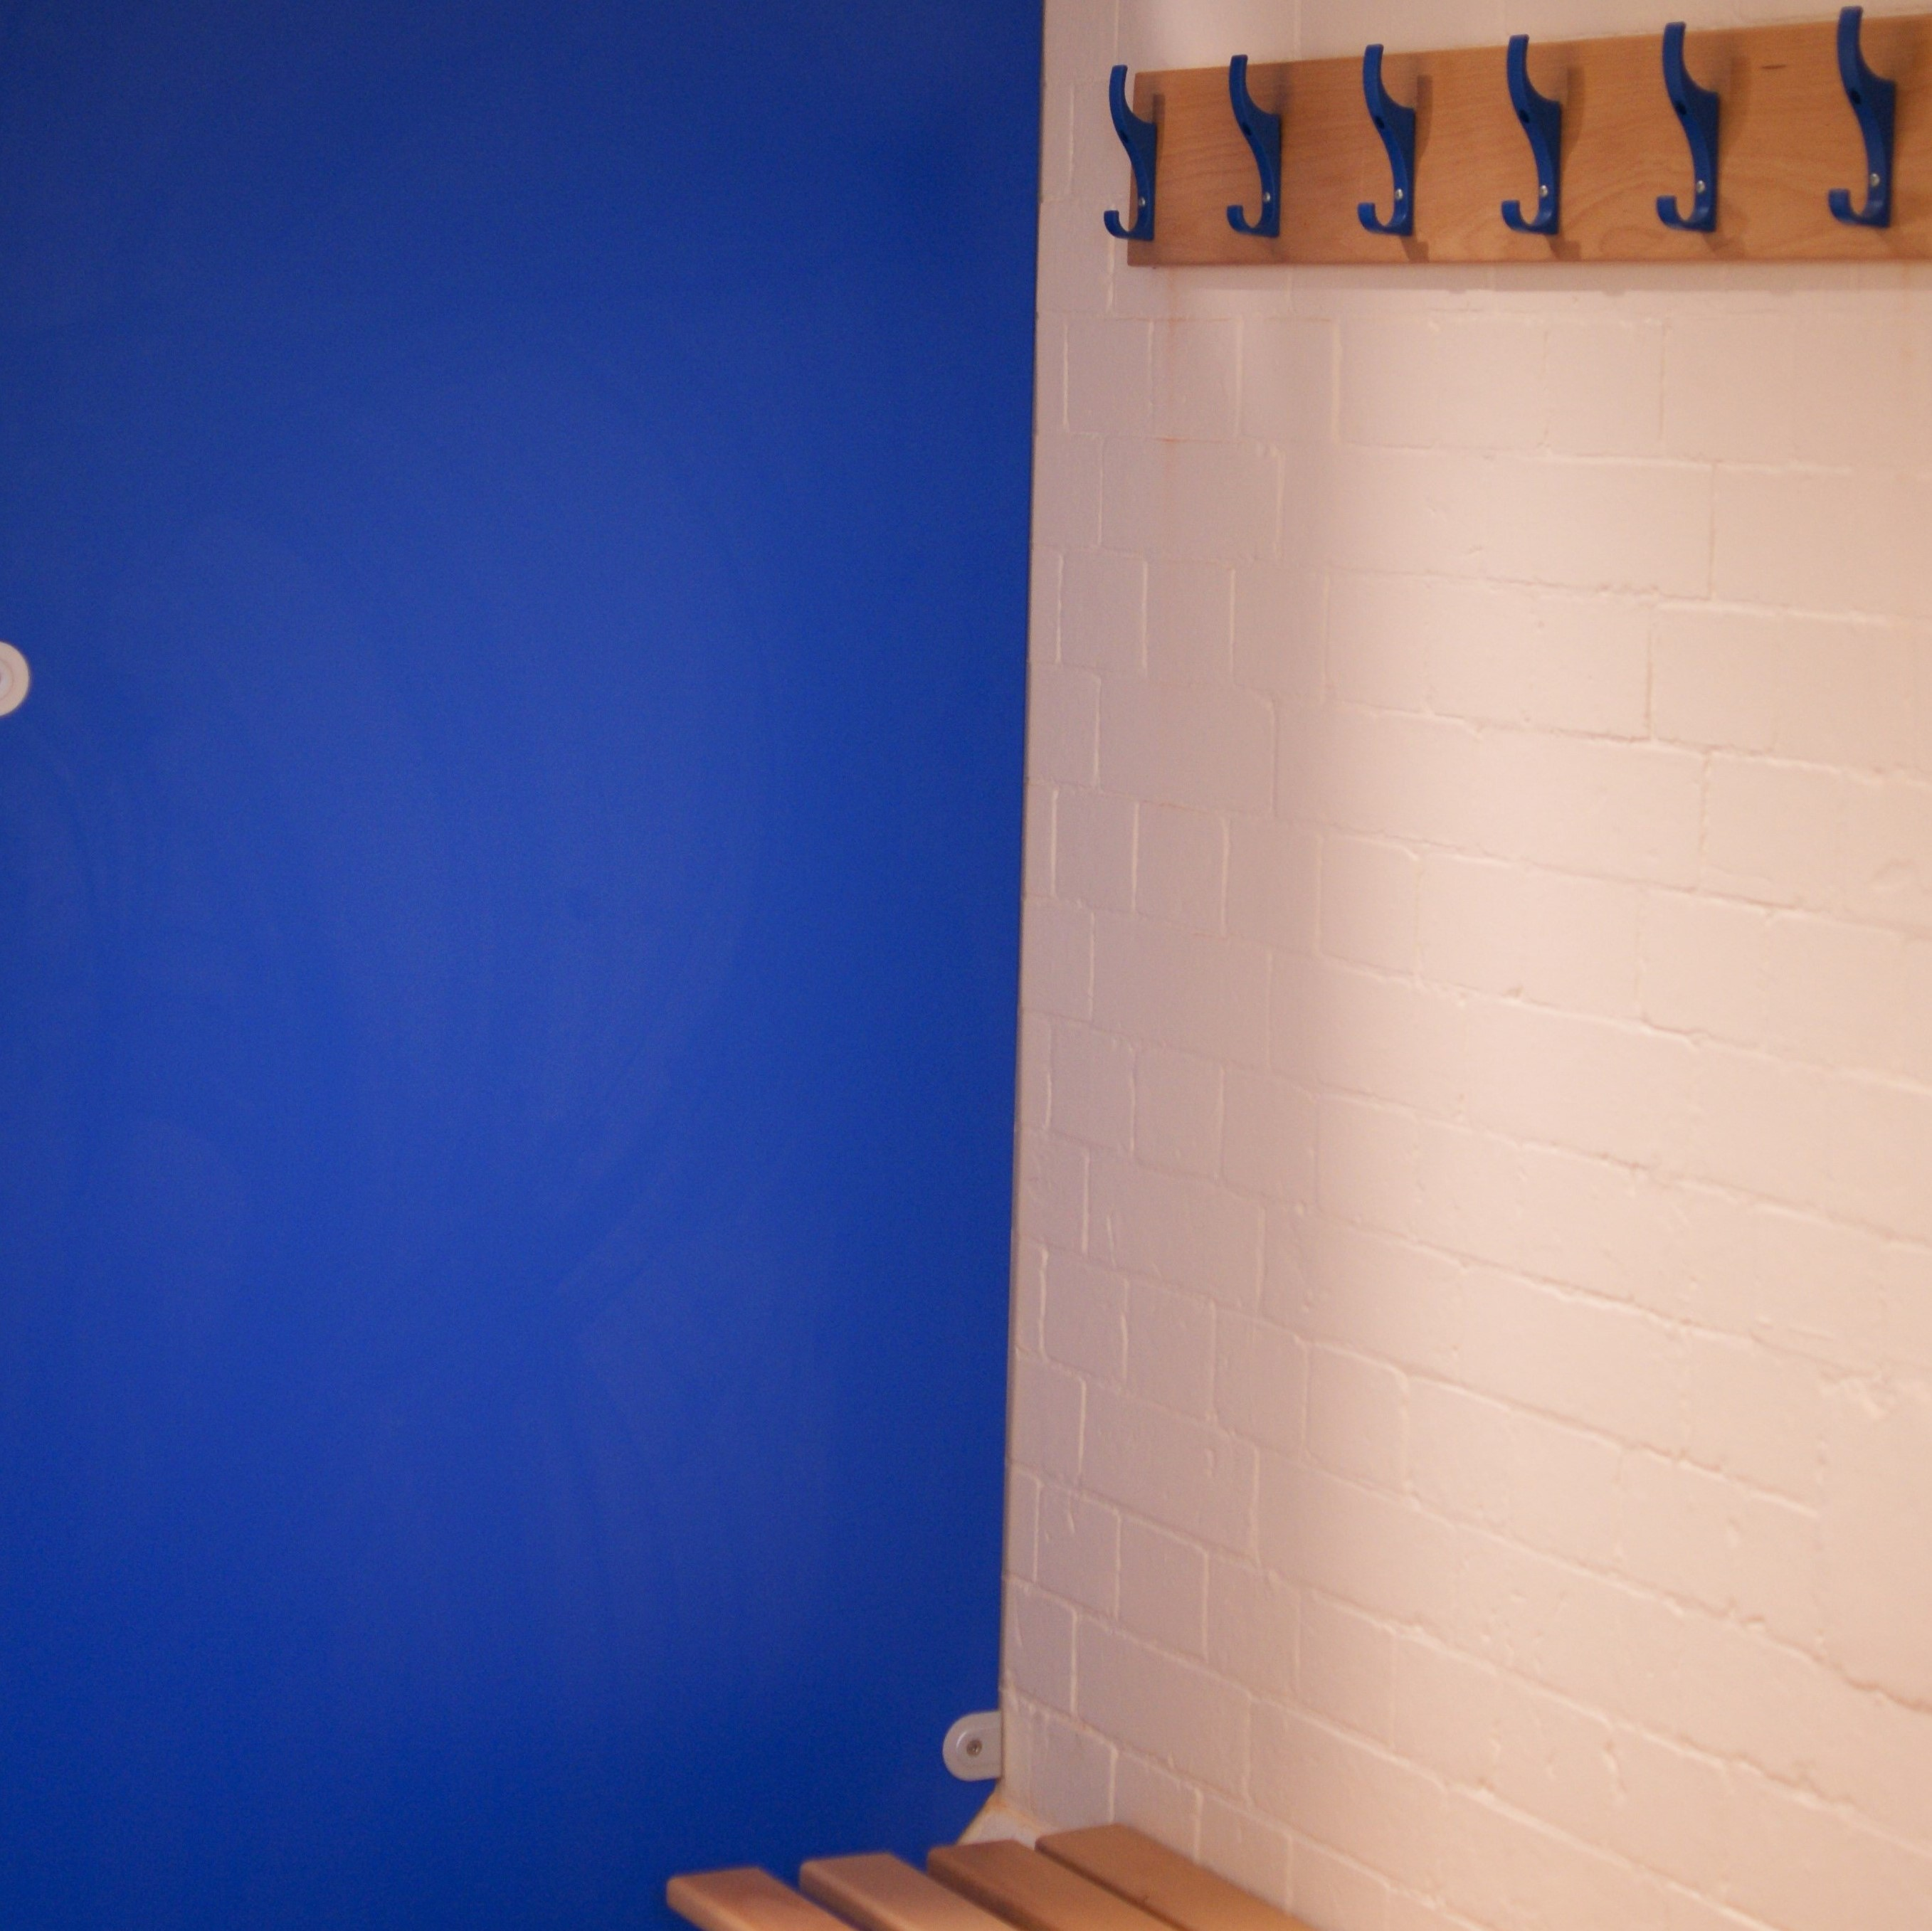 Changing room blue 4